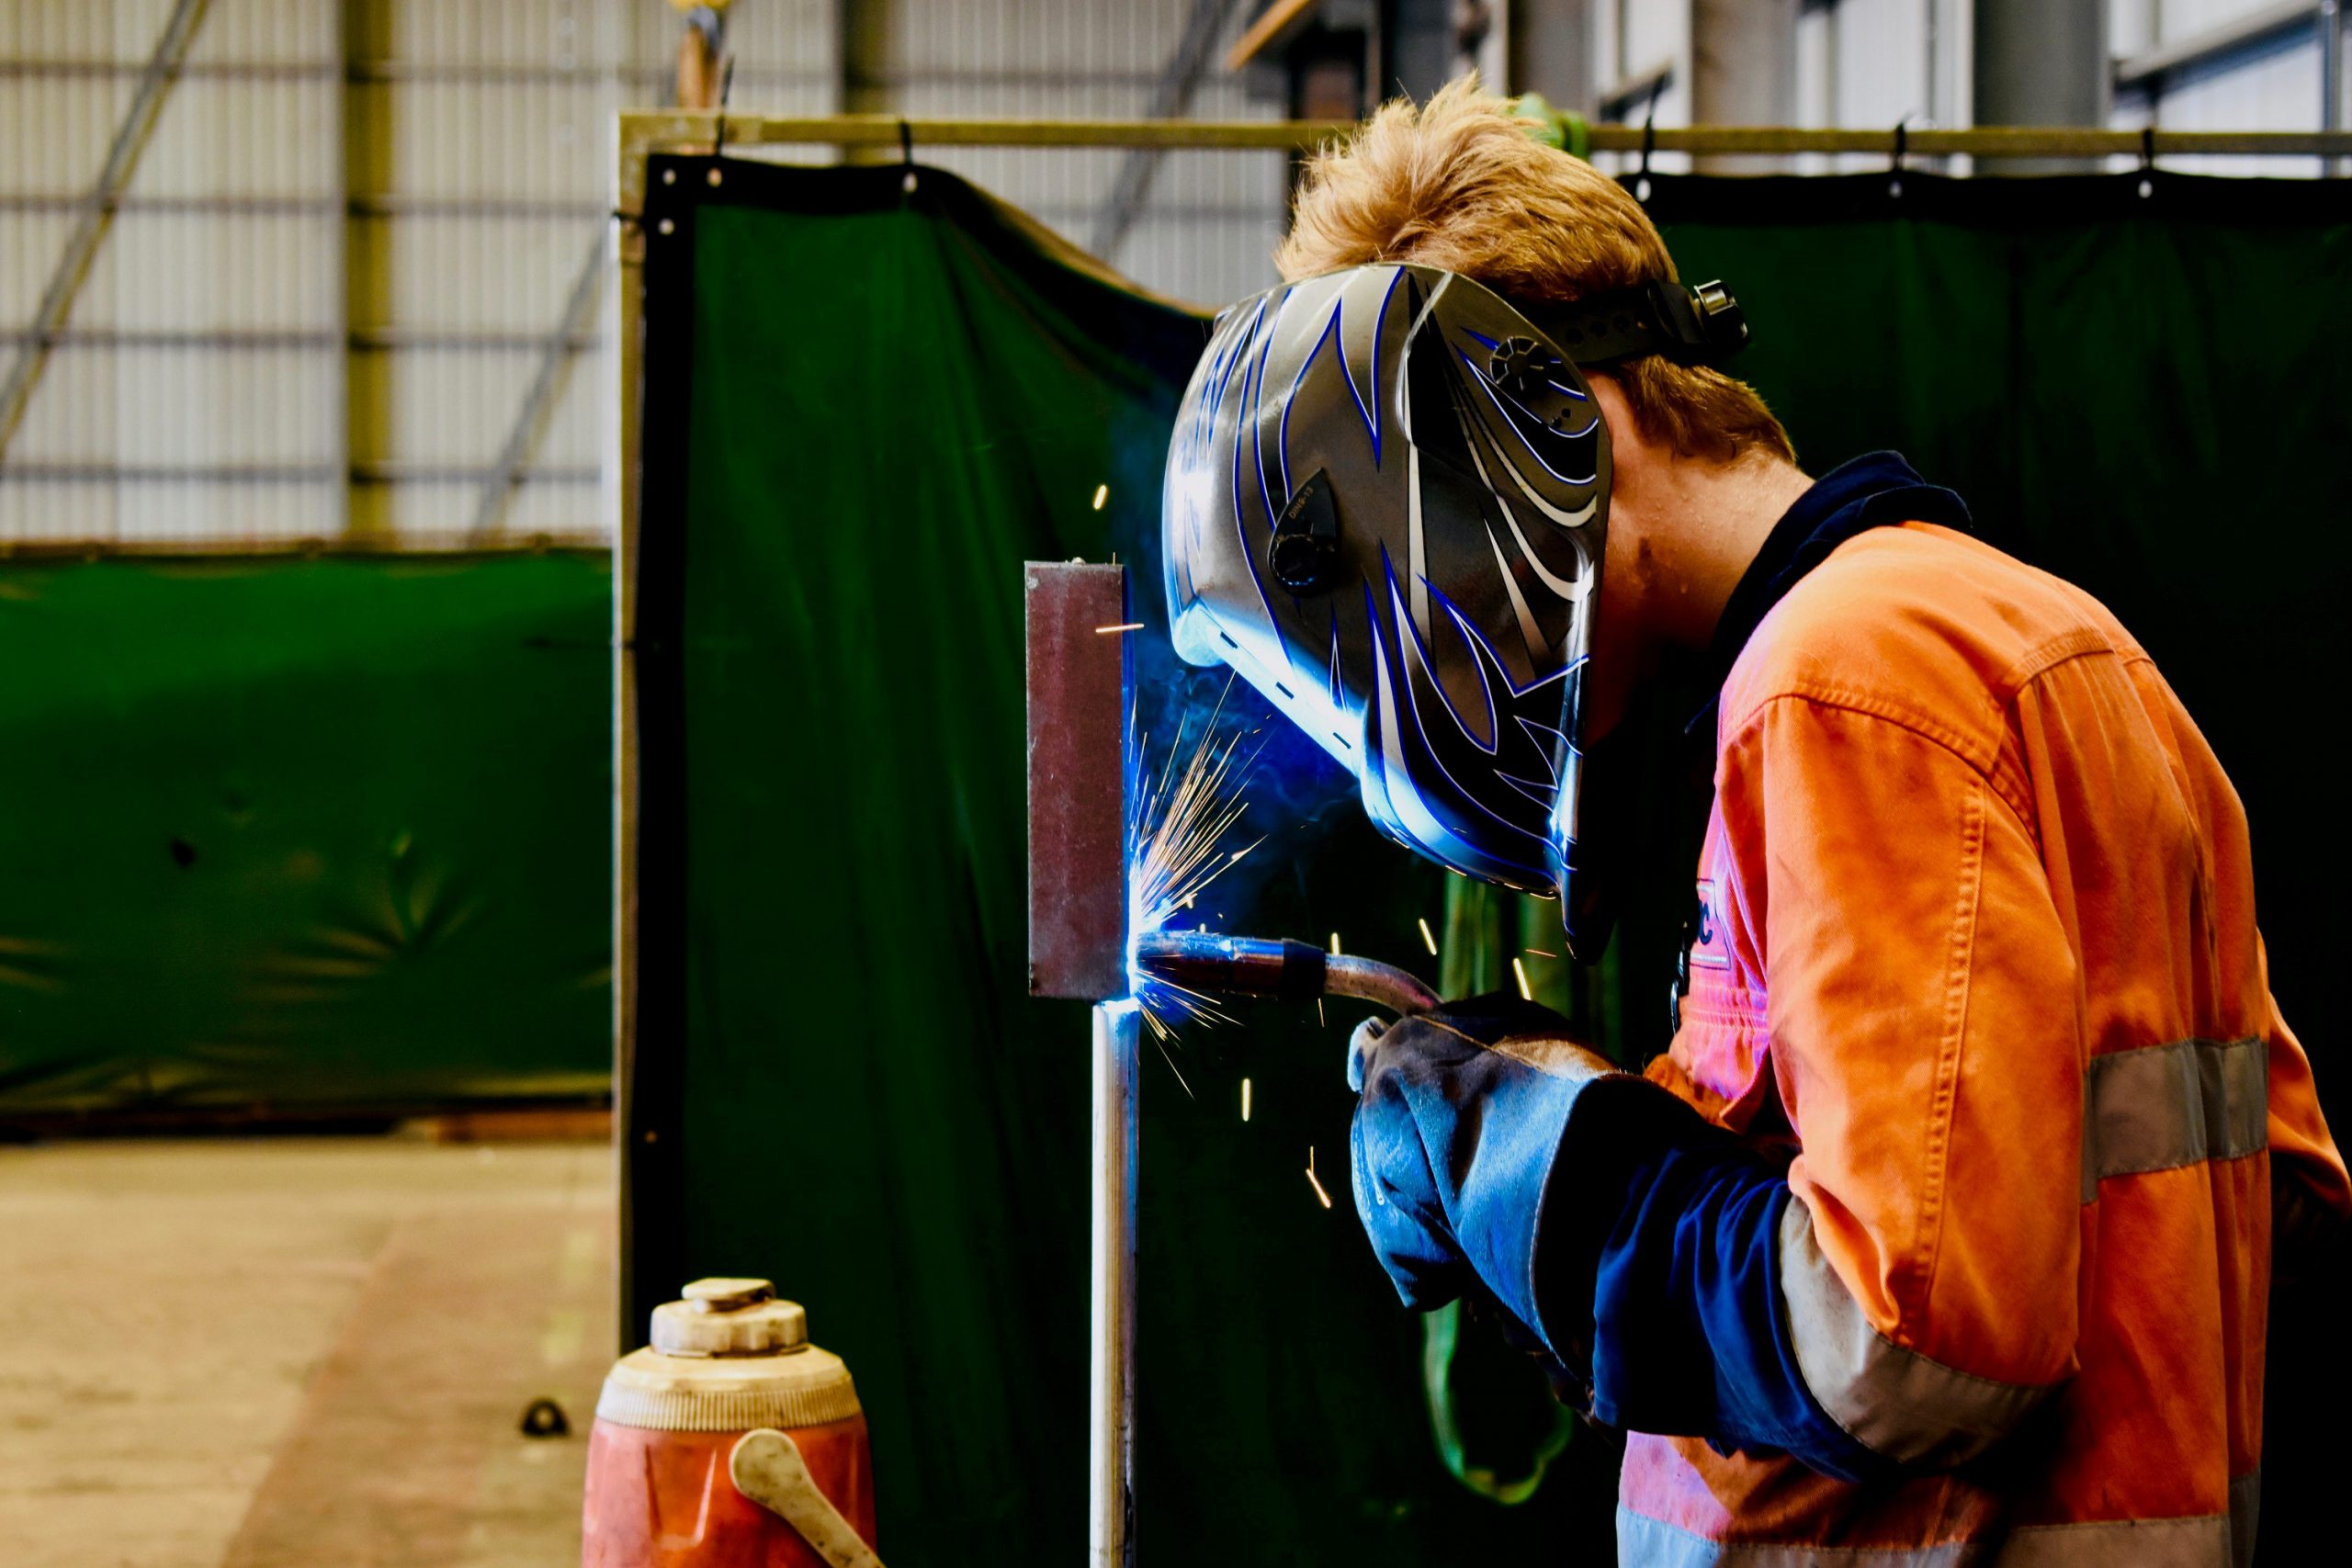 Pipe Fabrication & Welding